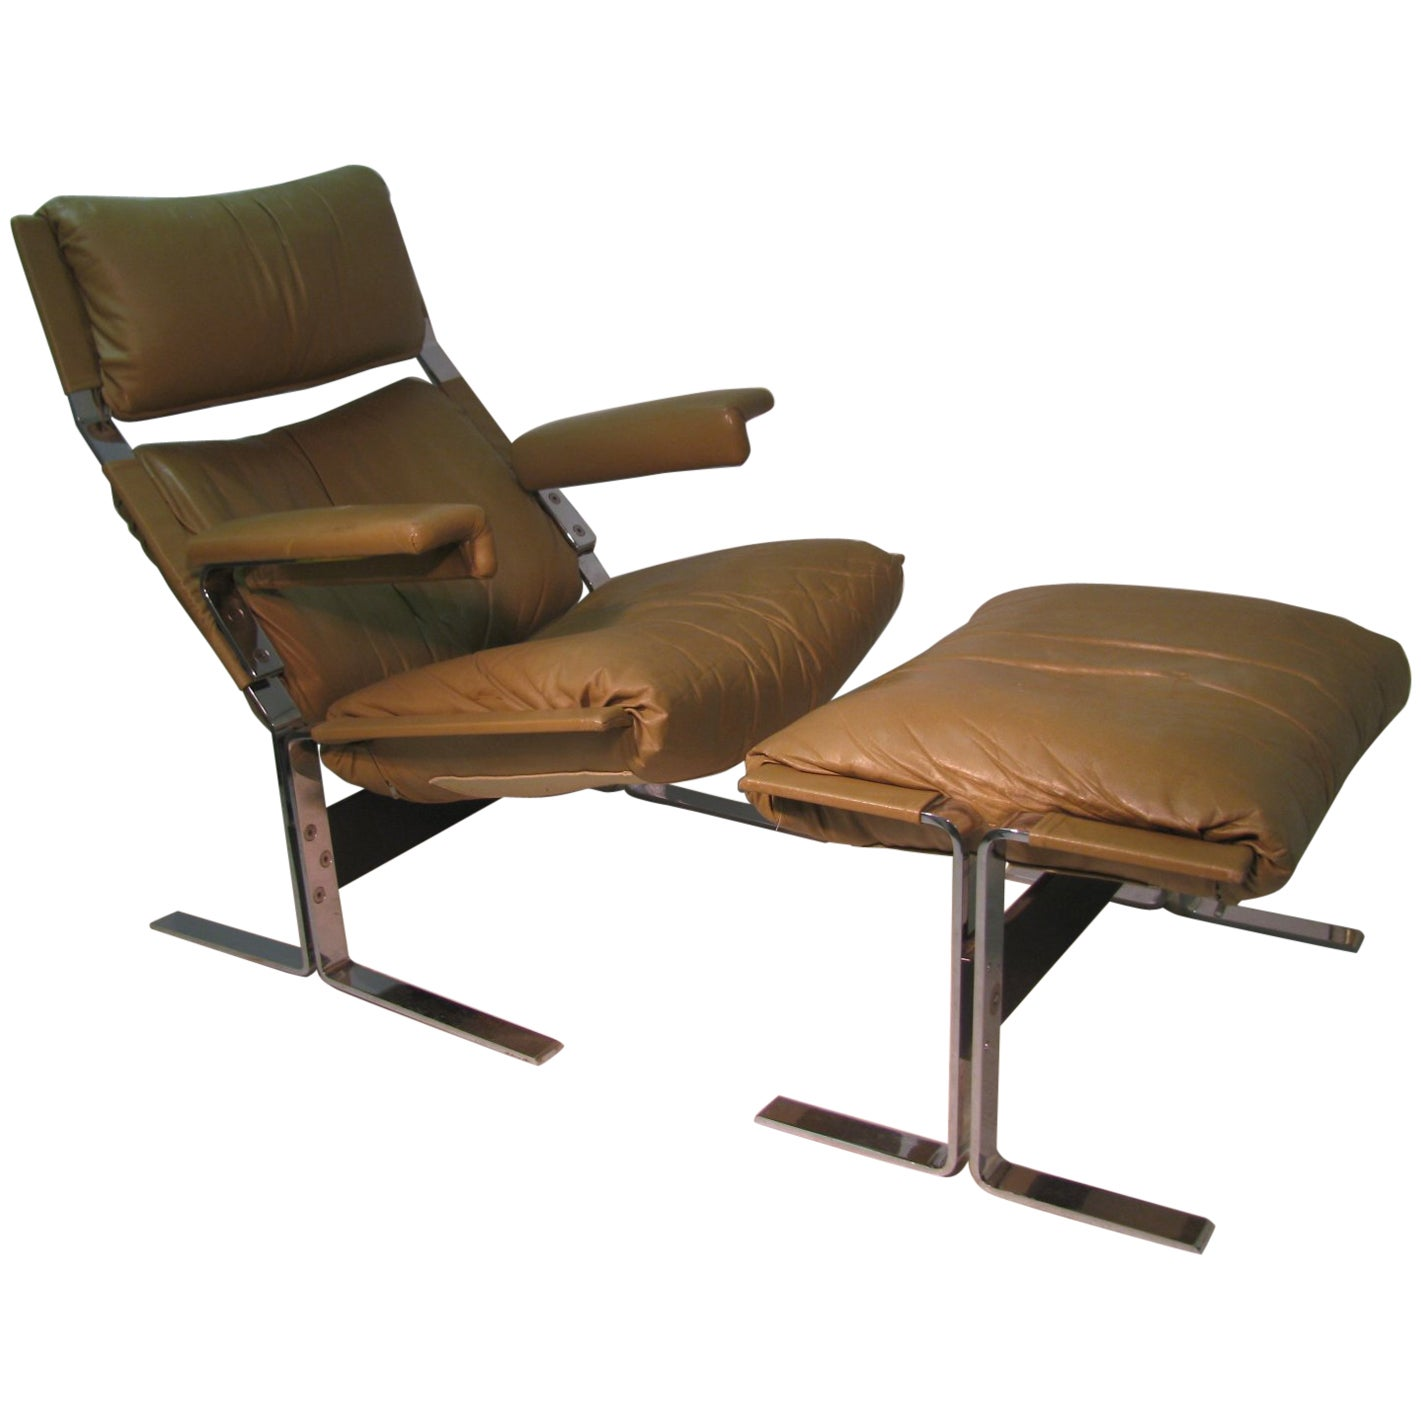 Mid-Century Modern Leather Lounge Chair with Ottoman by Richard Hersberger